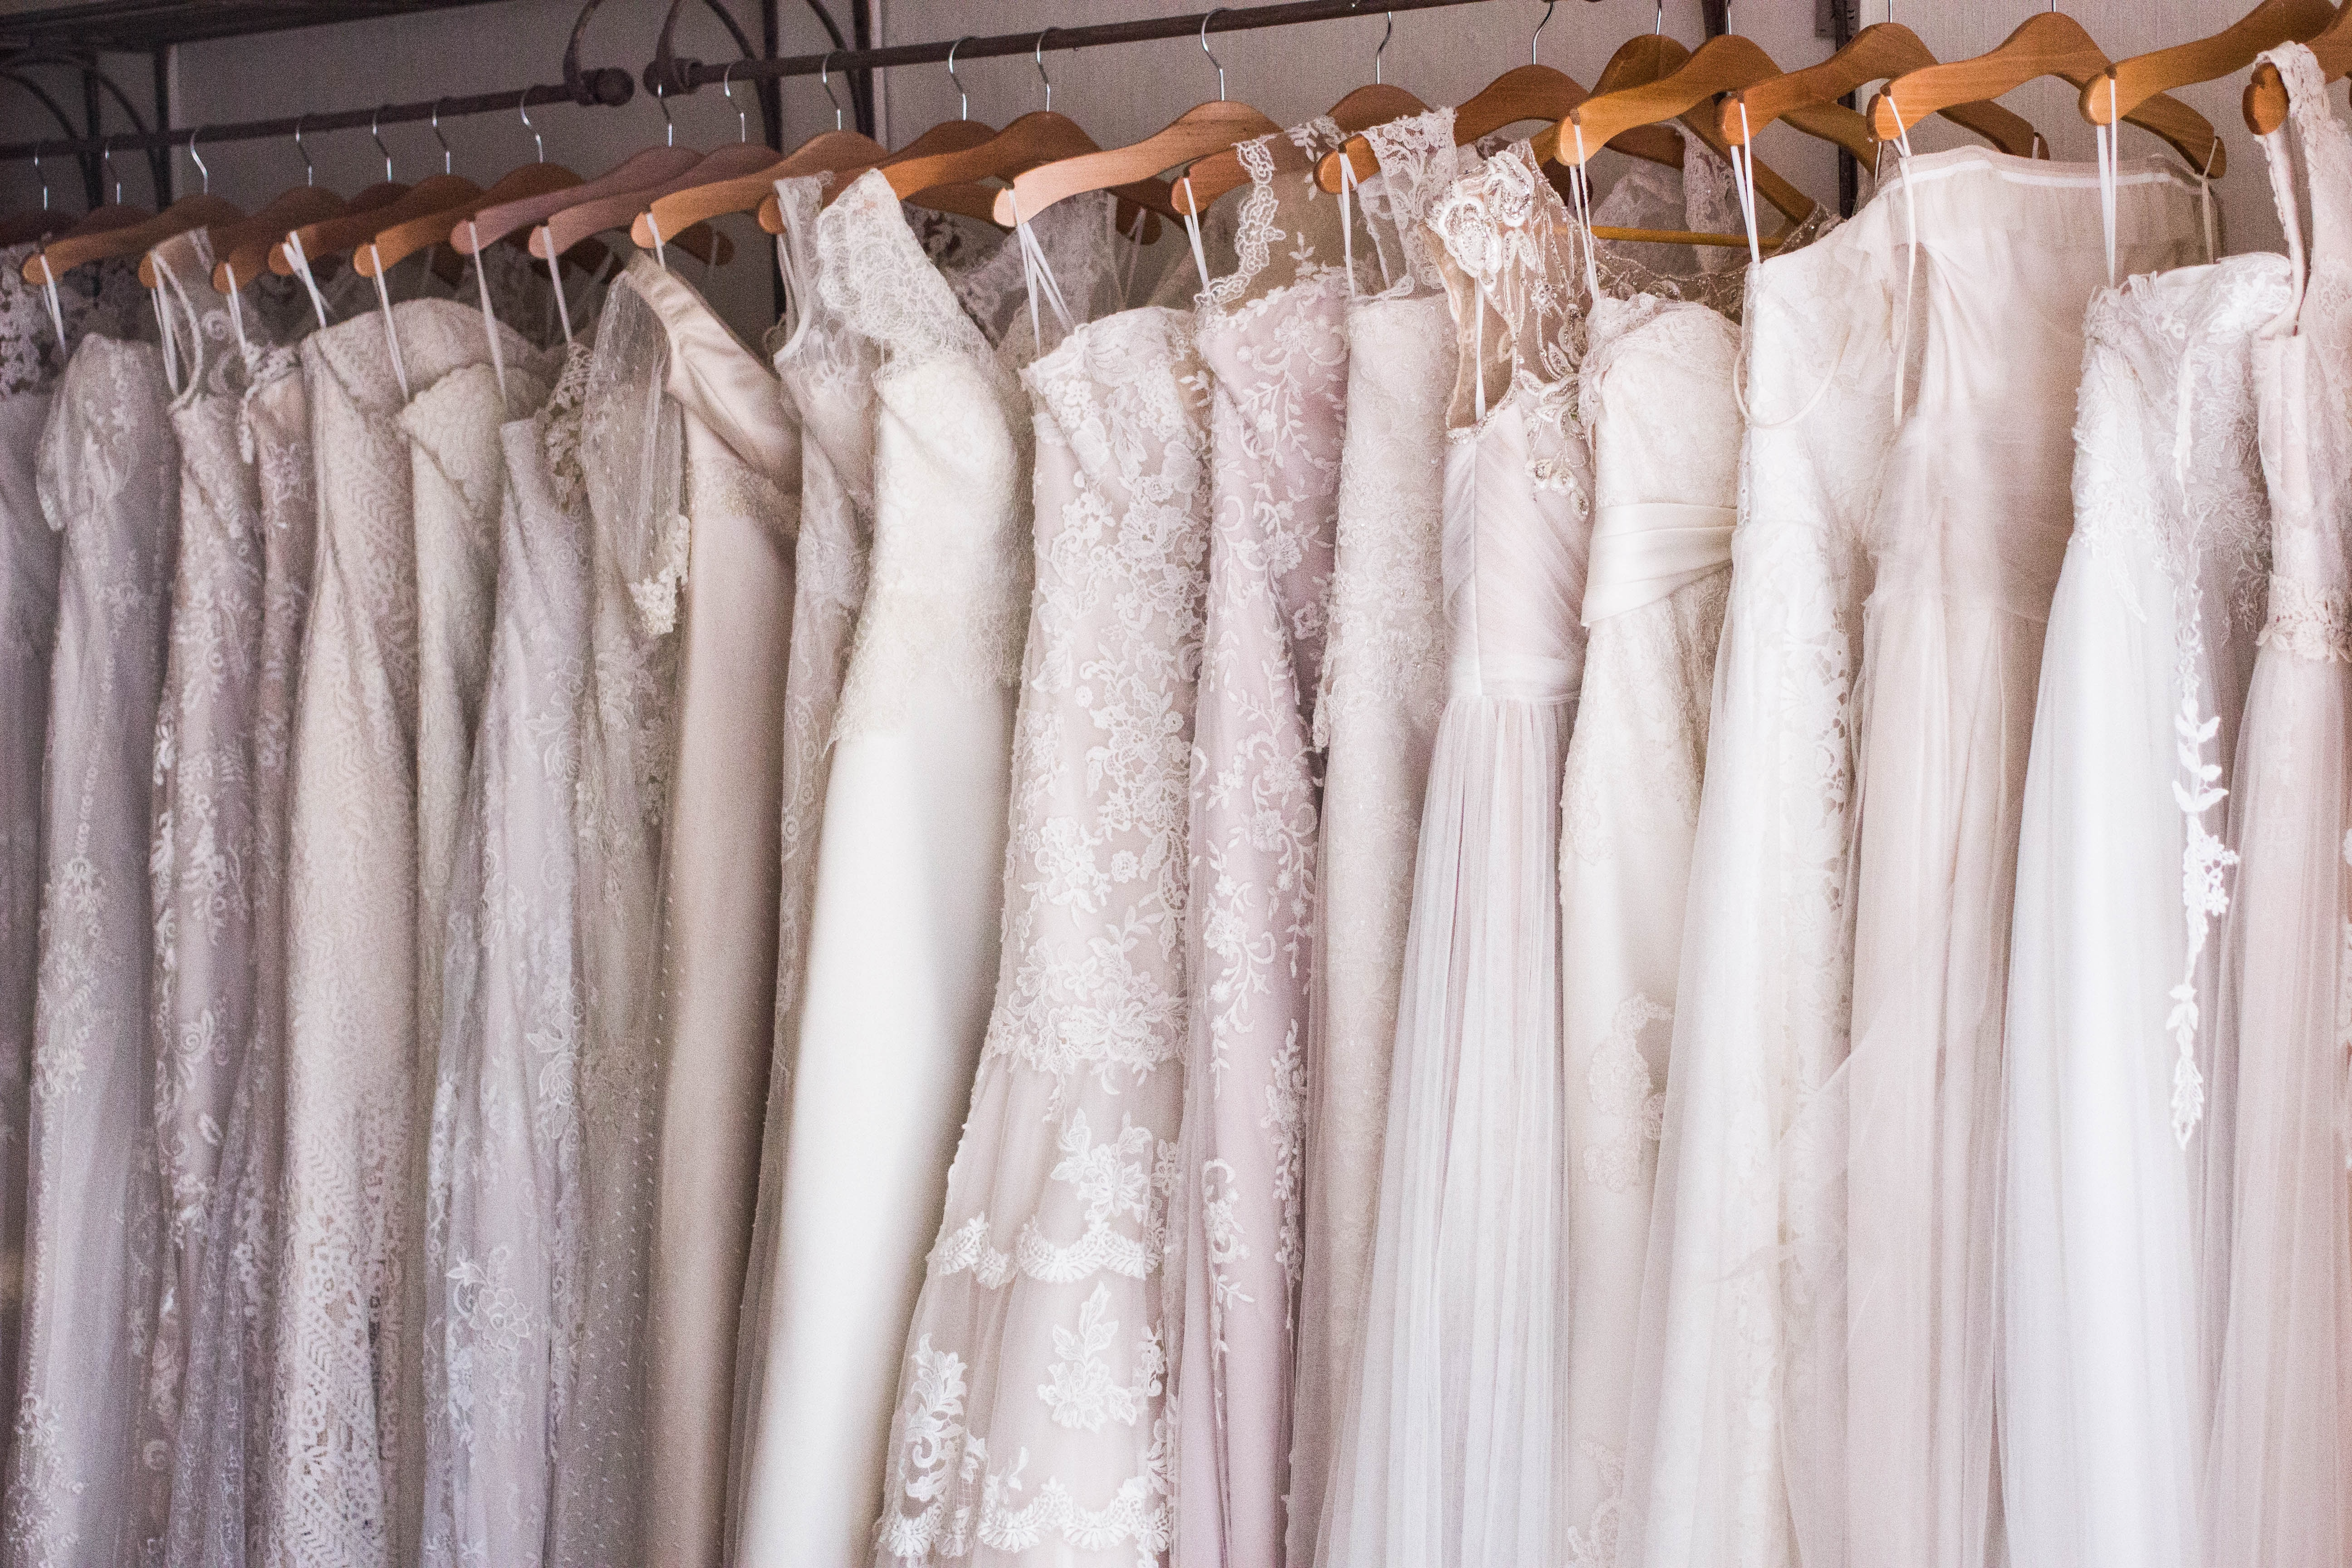 wedding dresses hung up in a row